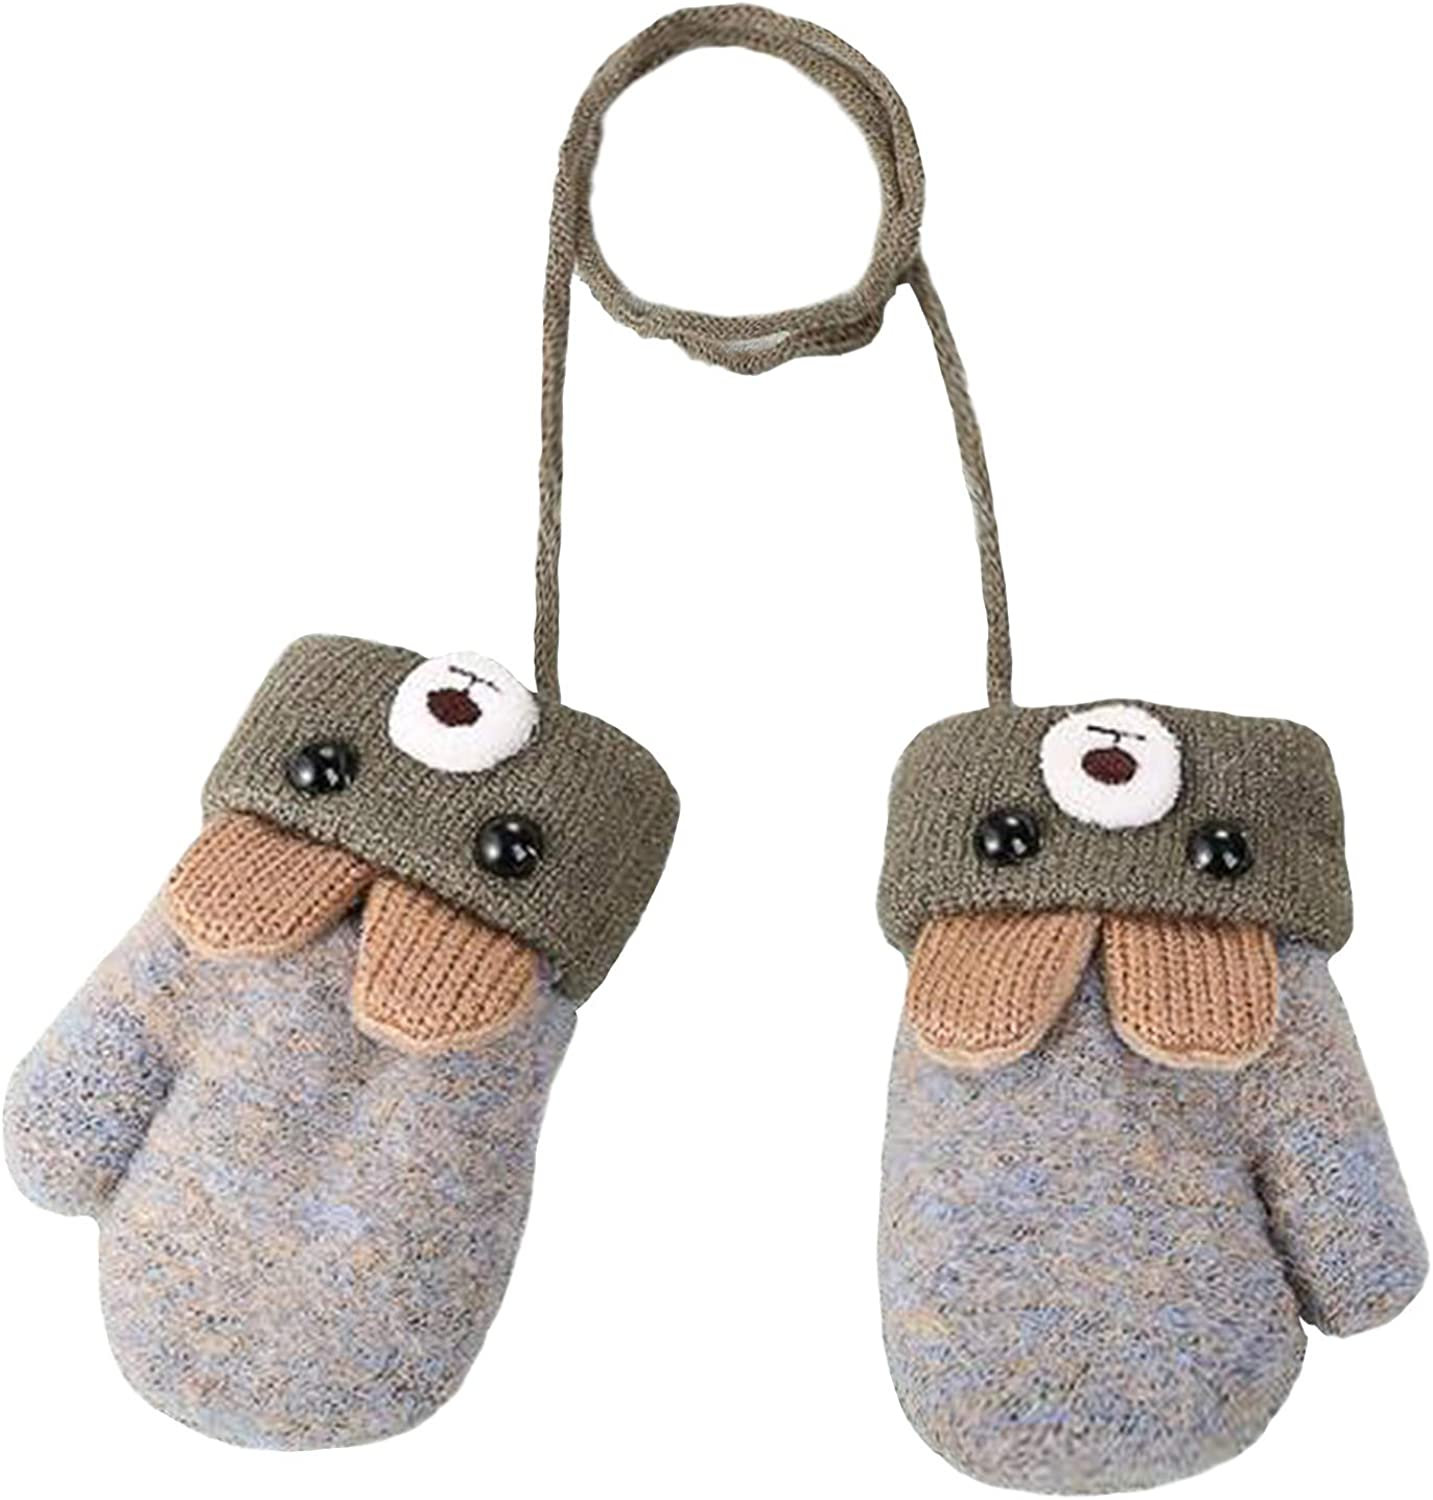 Toddlers Winter Knitted Warm Cartoon Gloves Birthday Xmas Gifts for 0-3 Y Xmas Gift